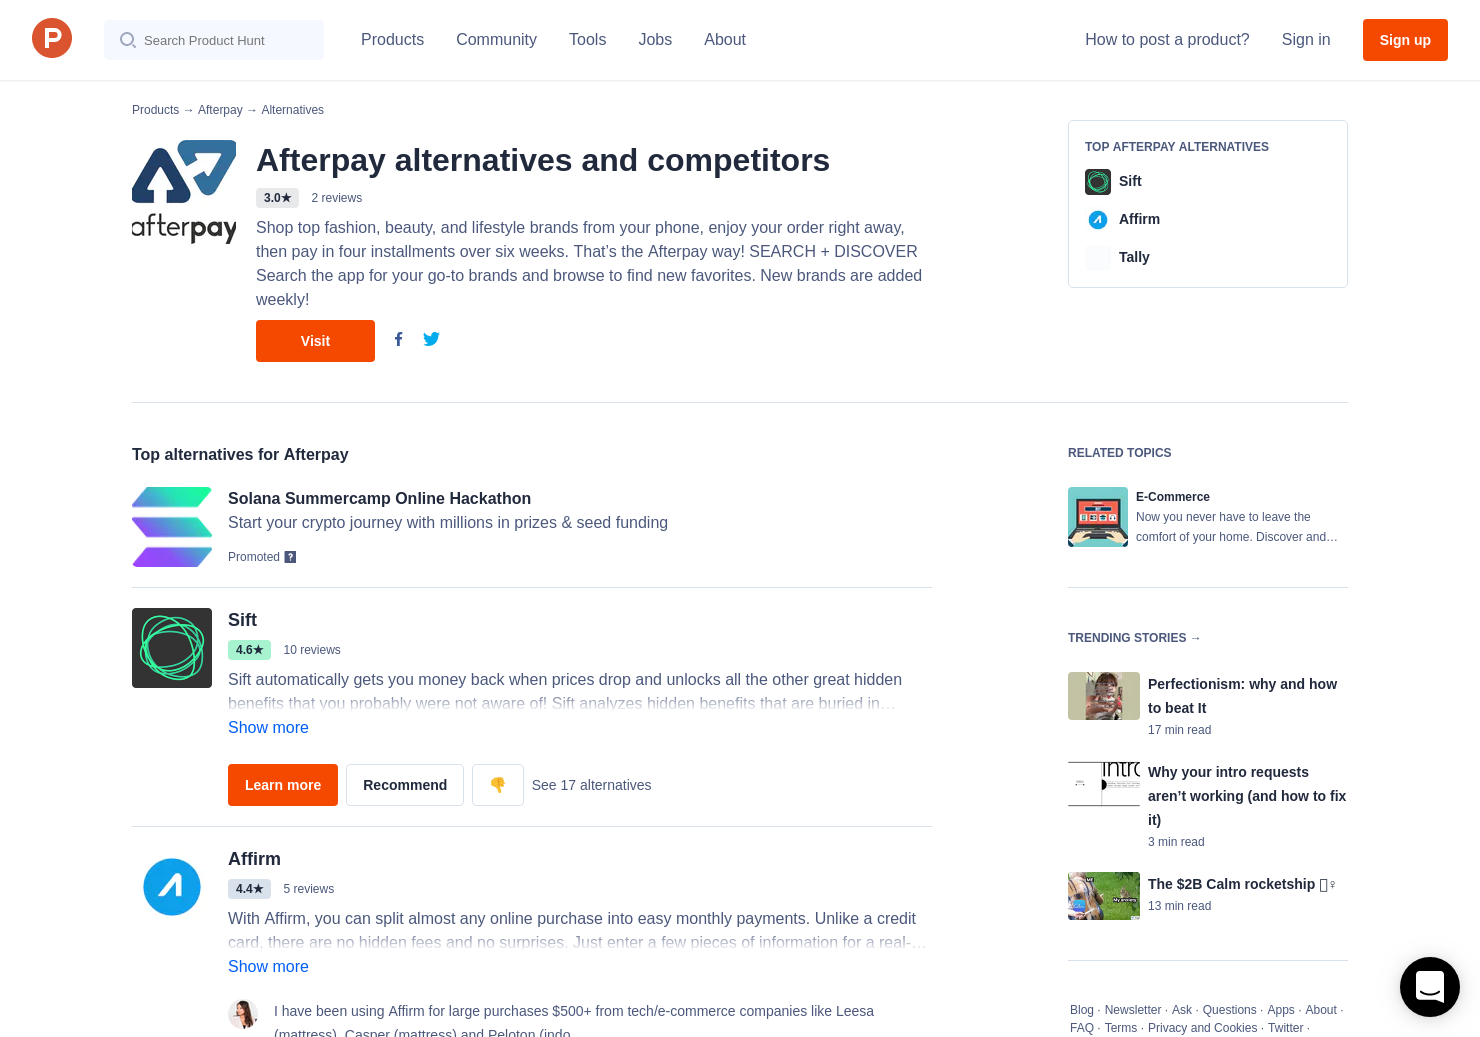 7 Alternatives to After Pay | Product Hunt